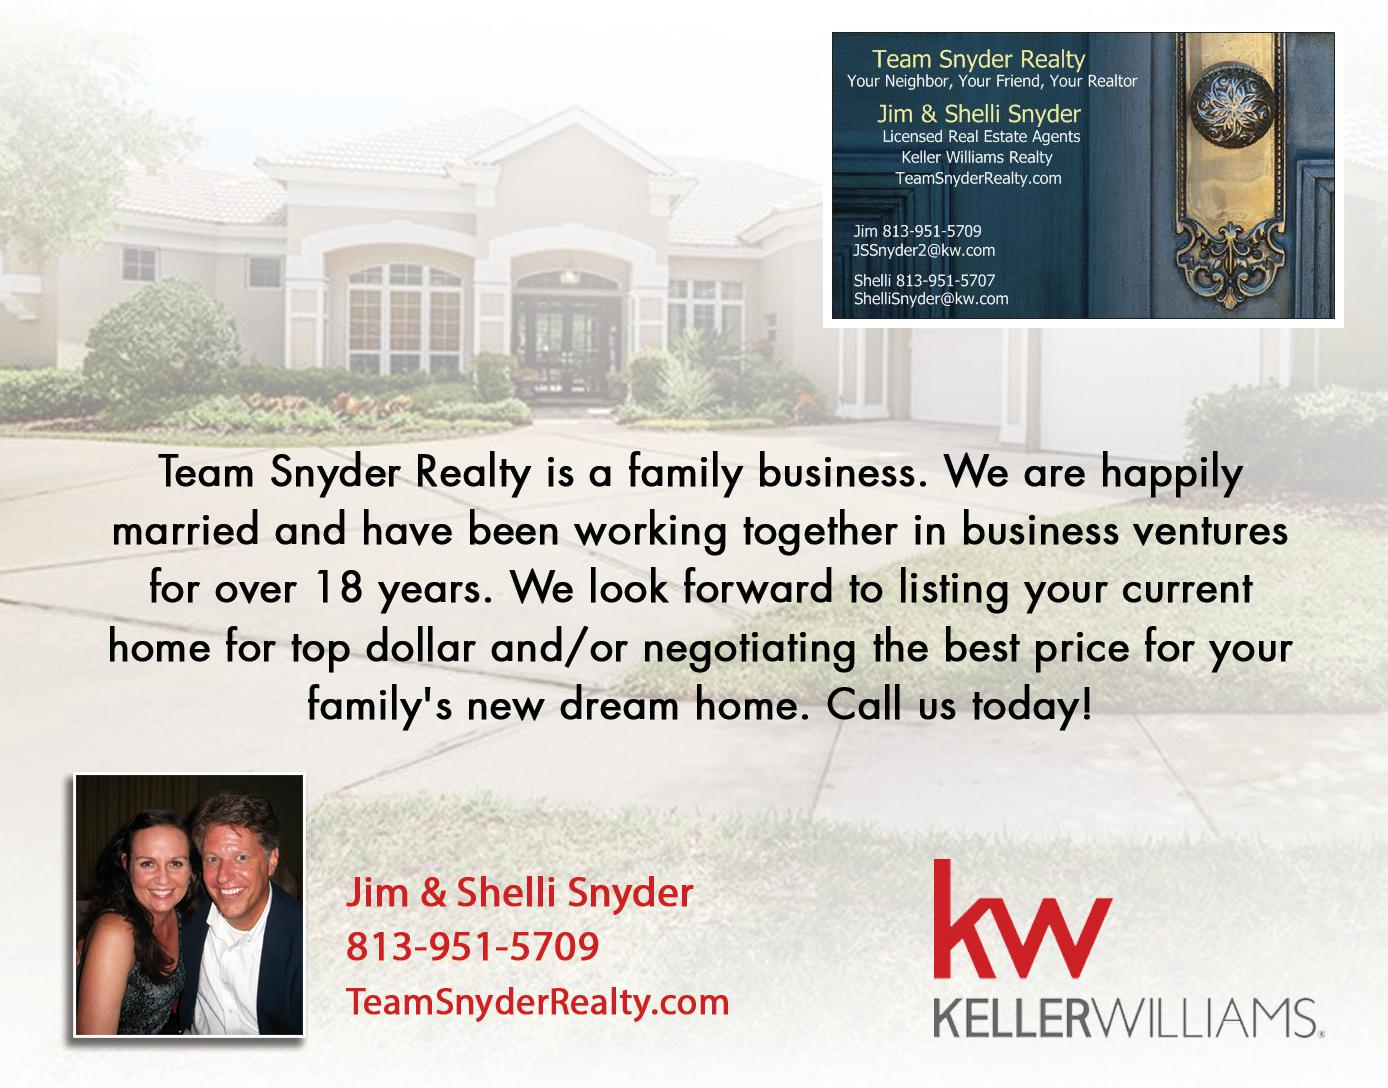 Team Snyder Realty